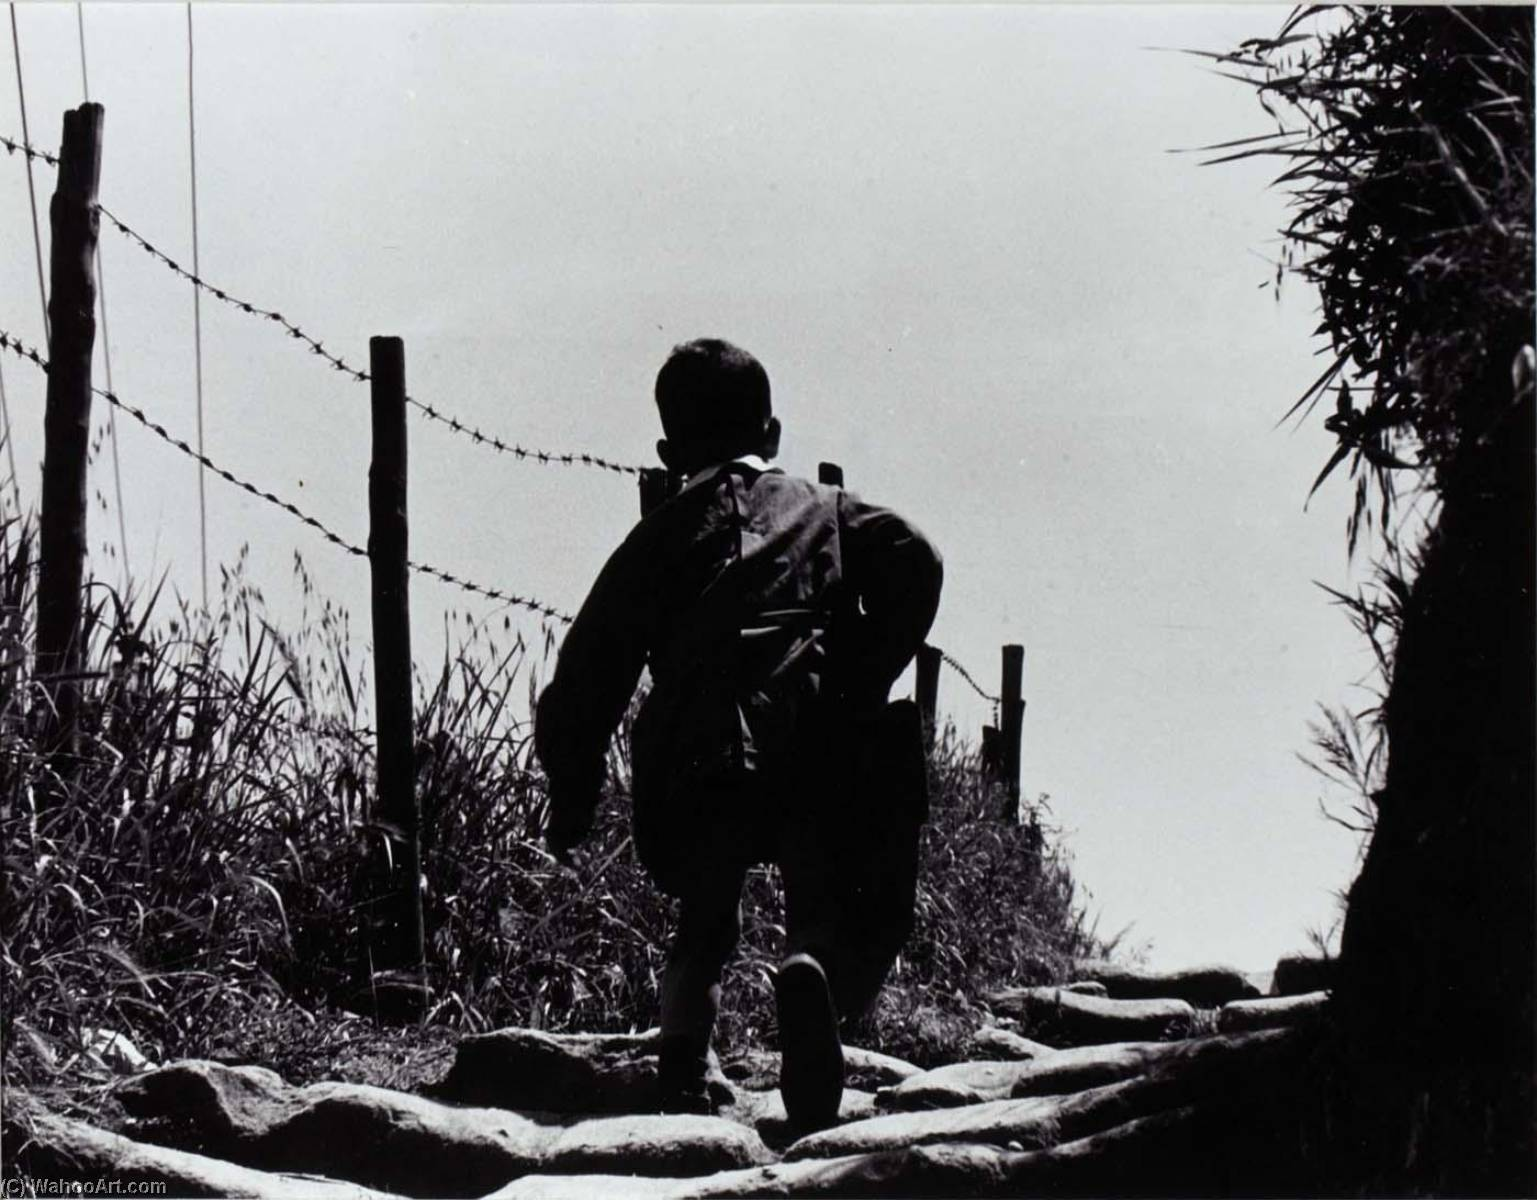 Rome (Back of Boy Walking beside Barbed Wire Fence), Print by Jeffrey Blankfort